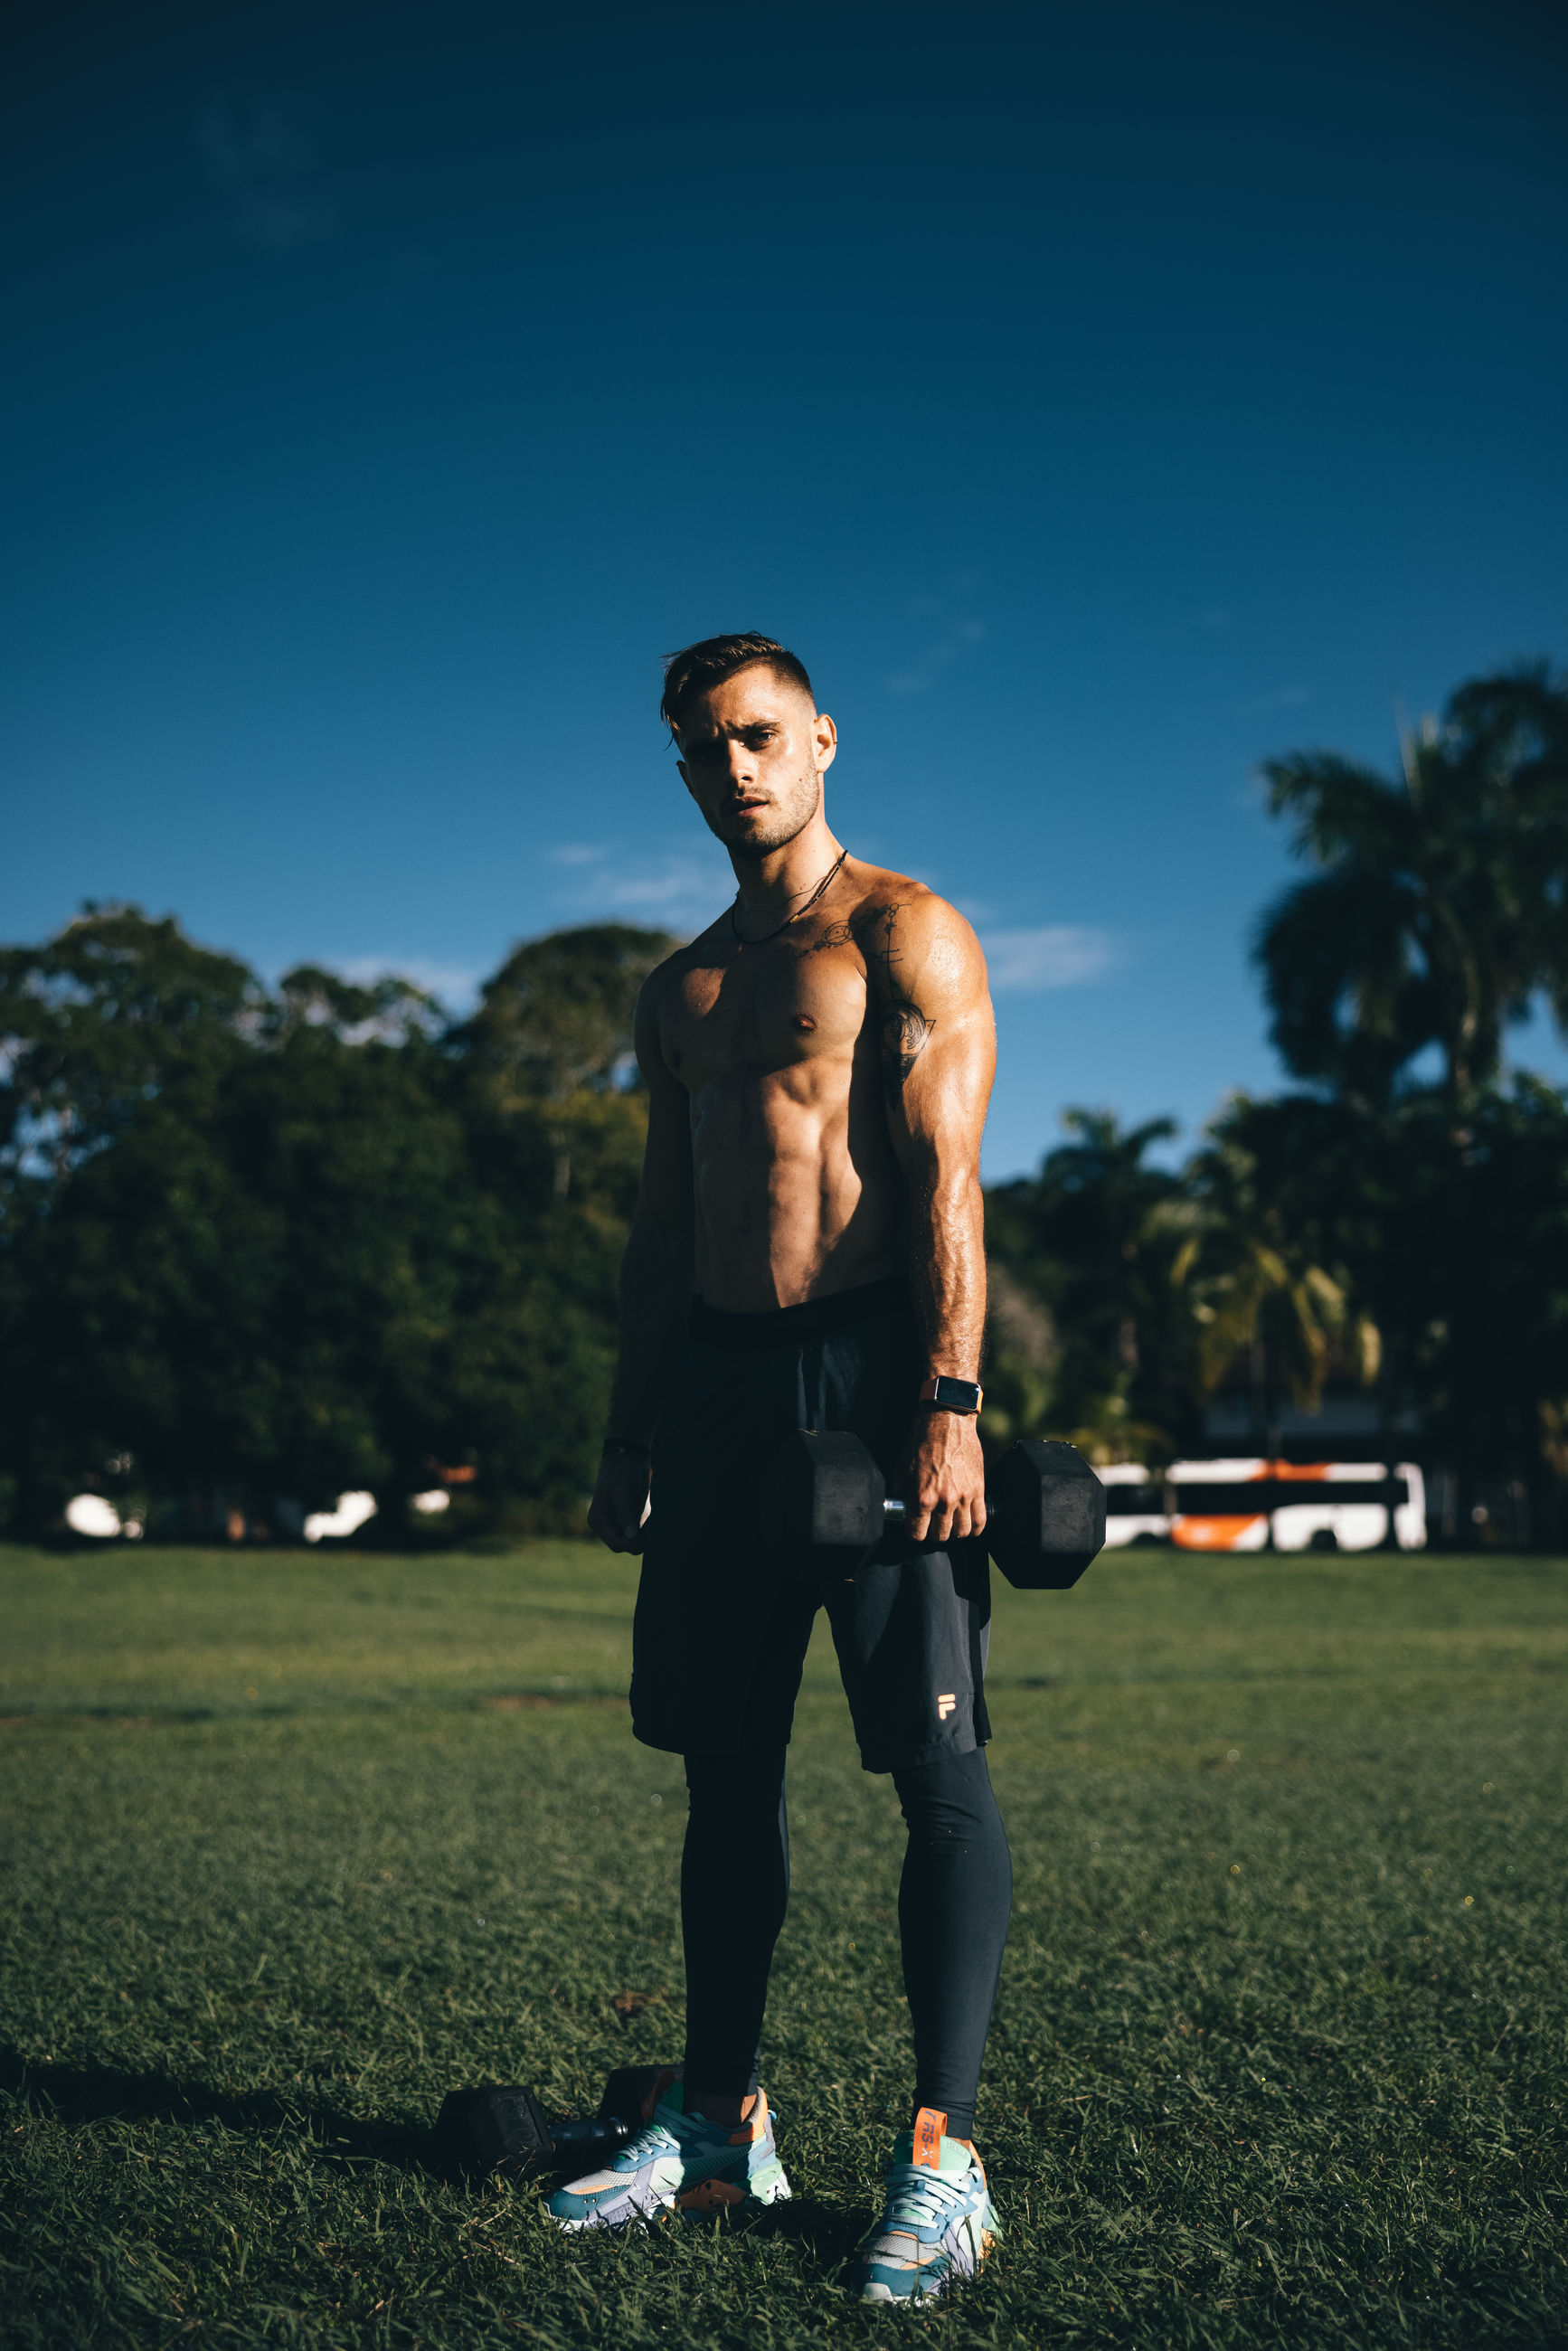 adult, sports, one person, full length, young adult, sky, grass, nature, lifestyles, standing, men, plant, blue, athlete, clothing, muscular build, exercising, portrait, leisure activity, front view, activity, outdoors, fashion, sports clothing, sports training, casual clothing, copy space, looking, person, player, car